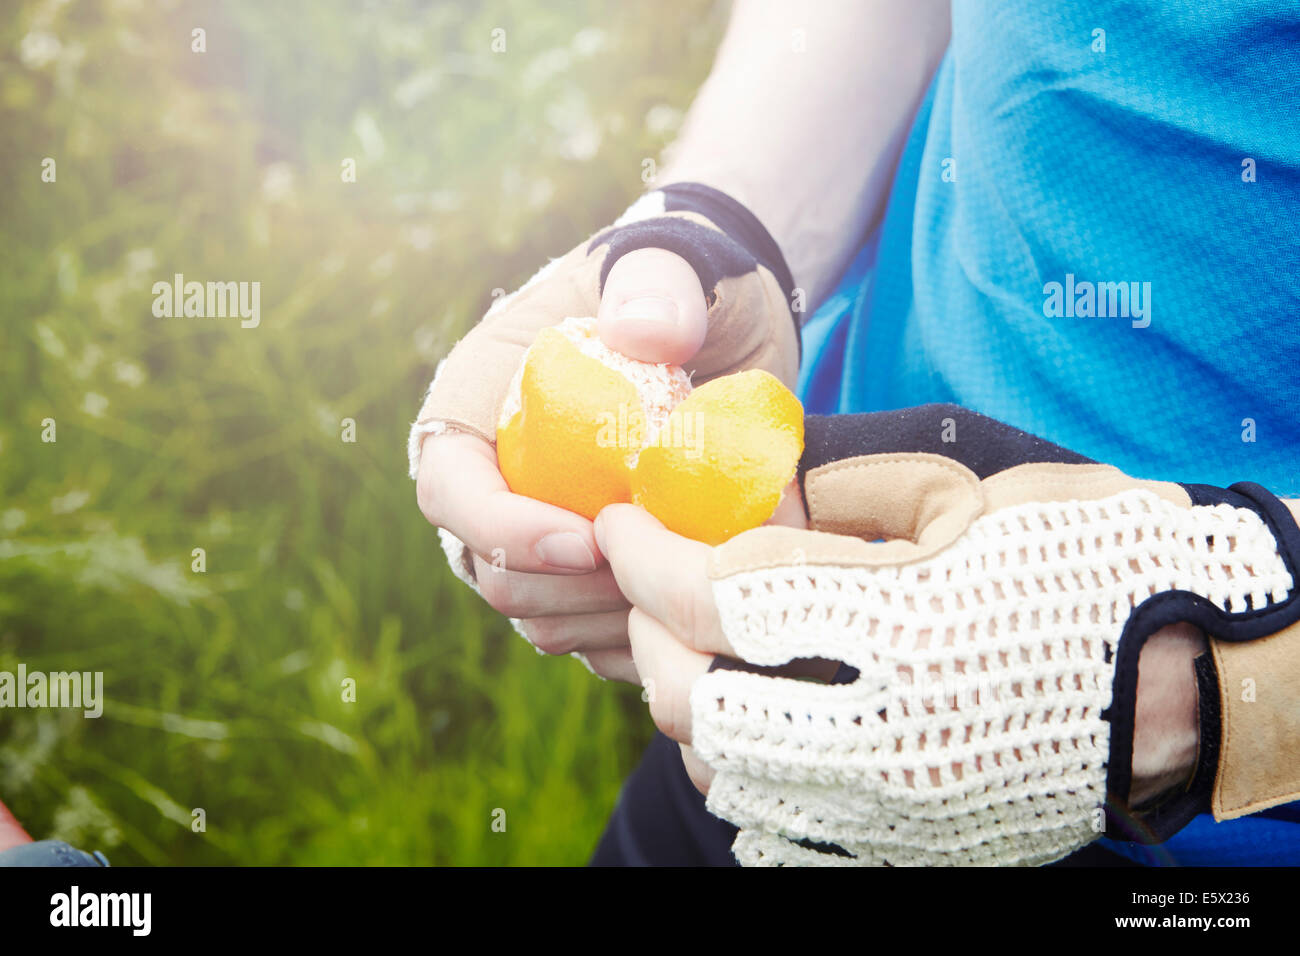 Cyclist peeling orange with gloved hands - Stock Image